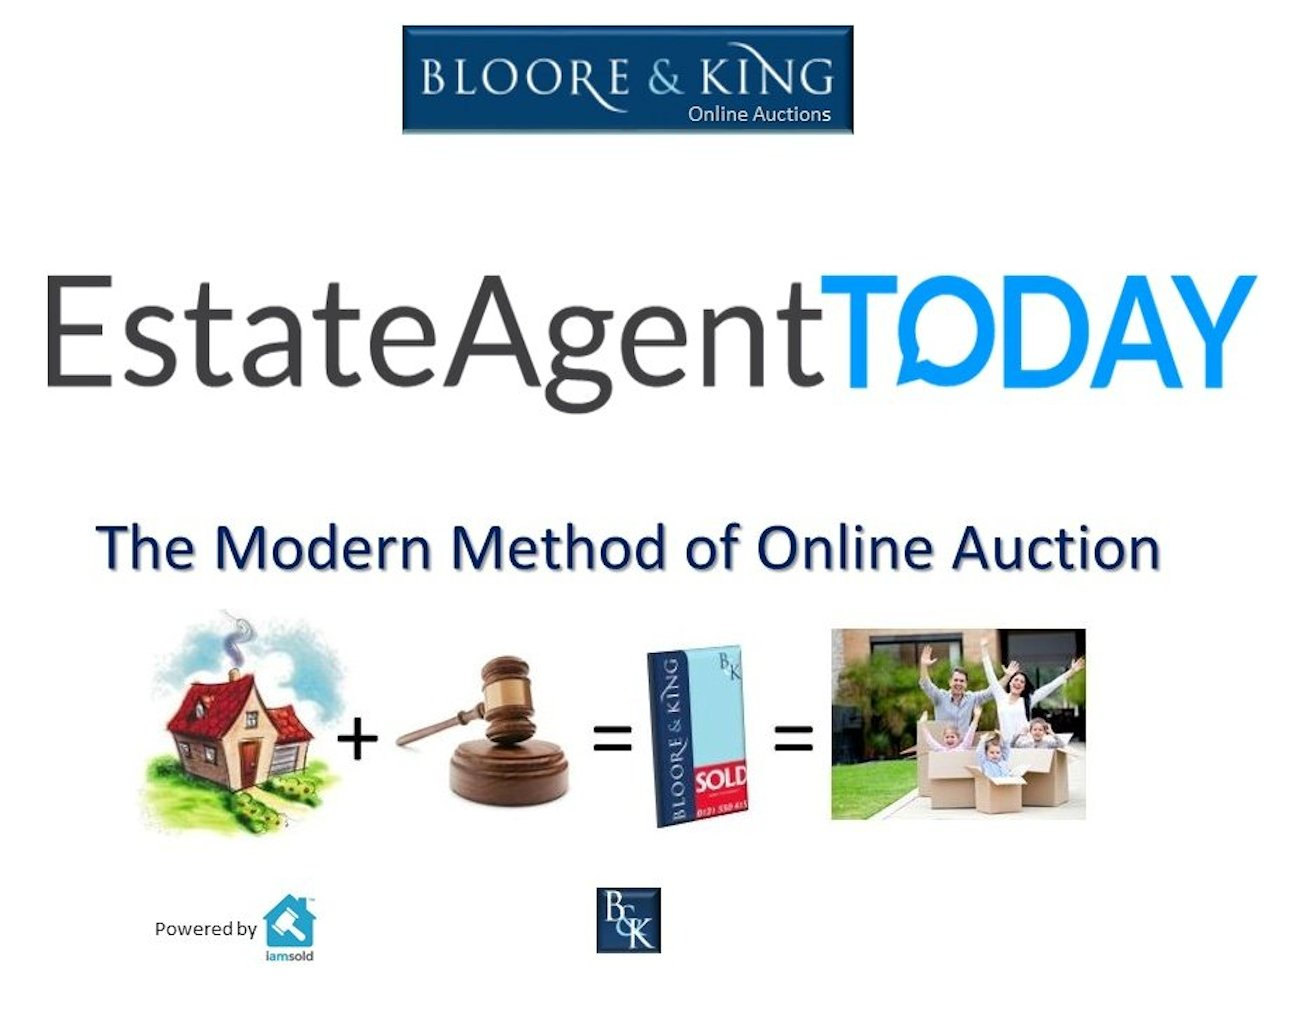 Online Auction is a huge success